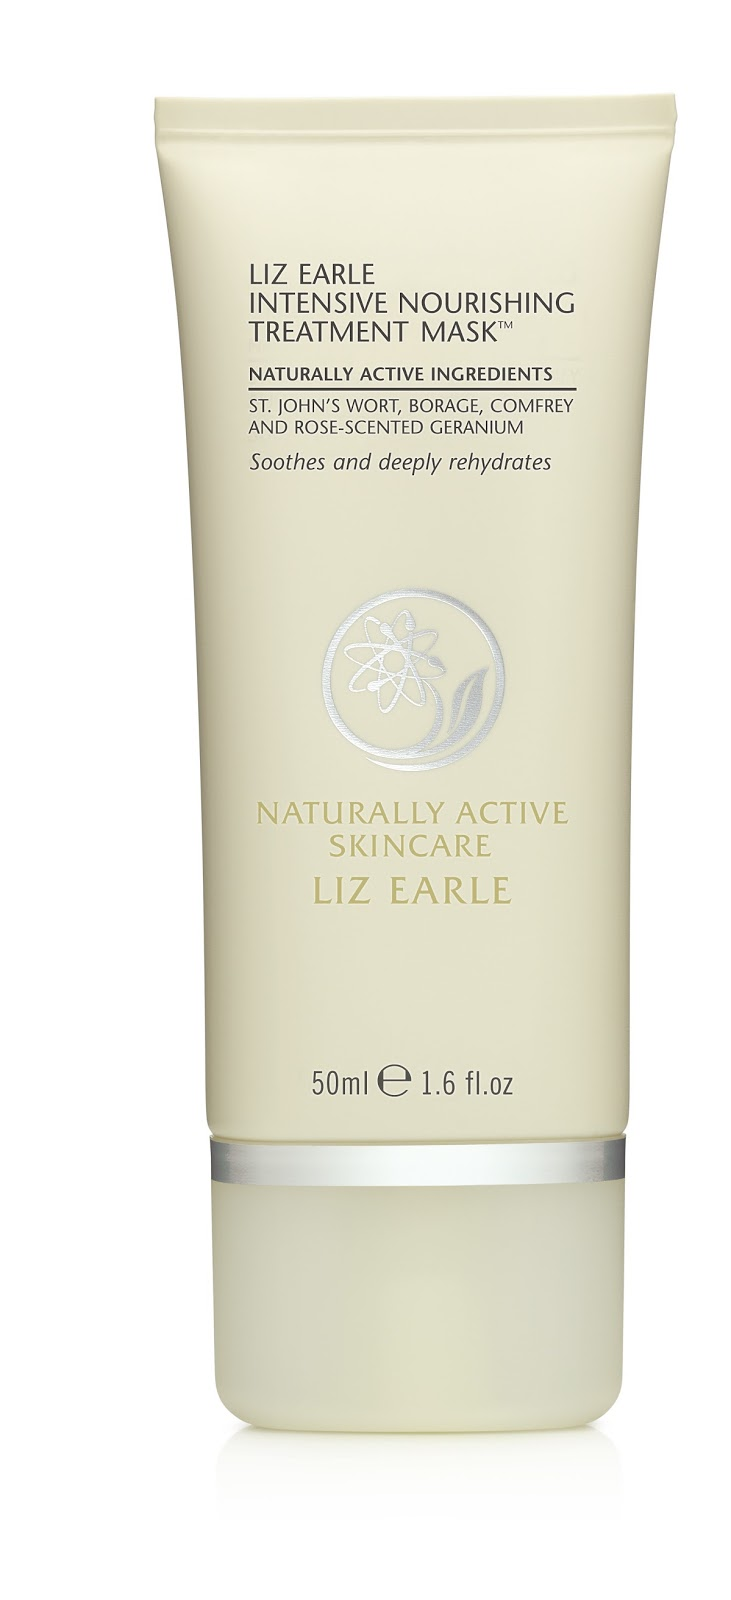 Preview: Intensive Nourishing Treatment Mask - Liz Earle